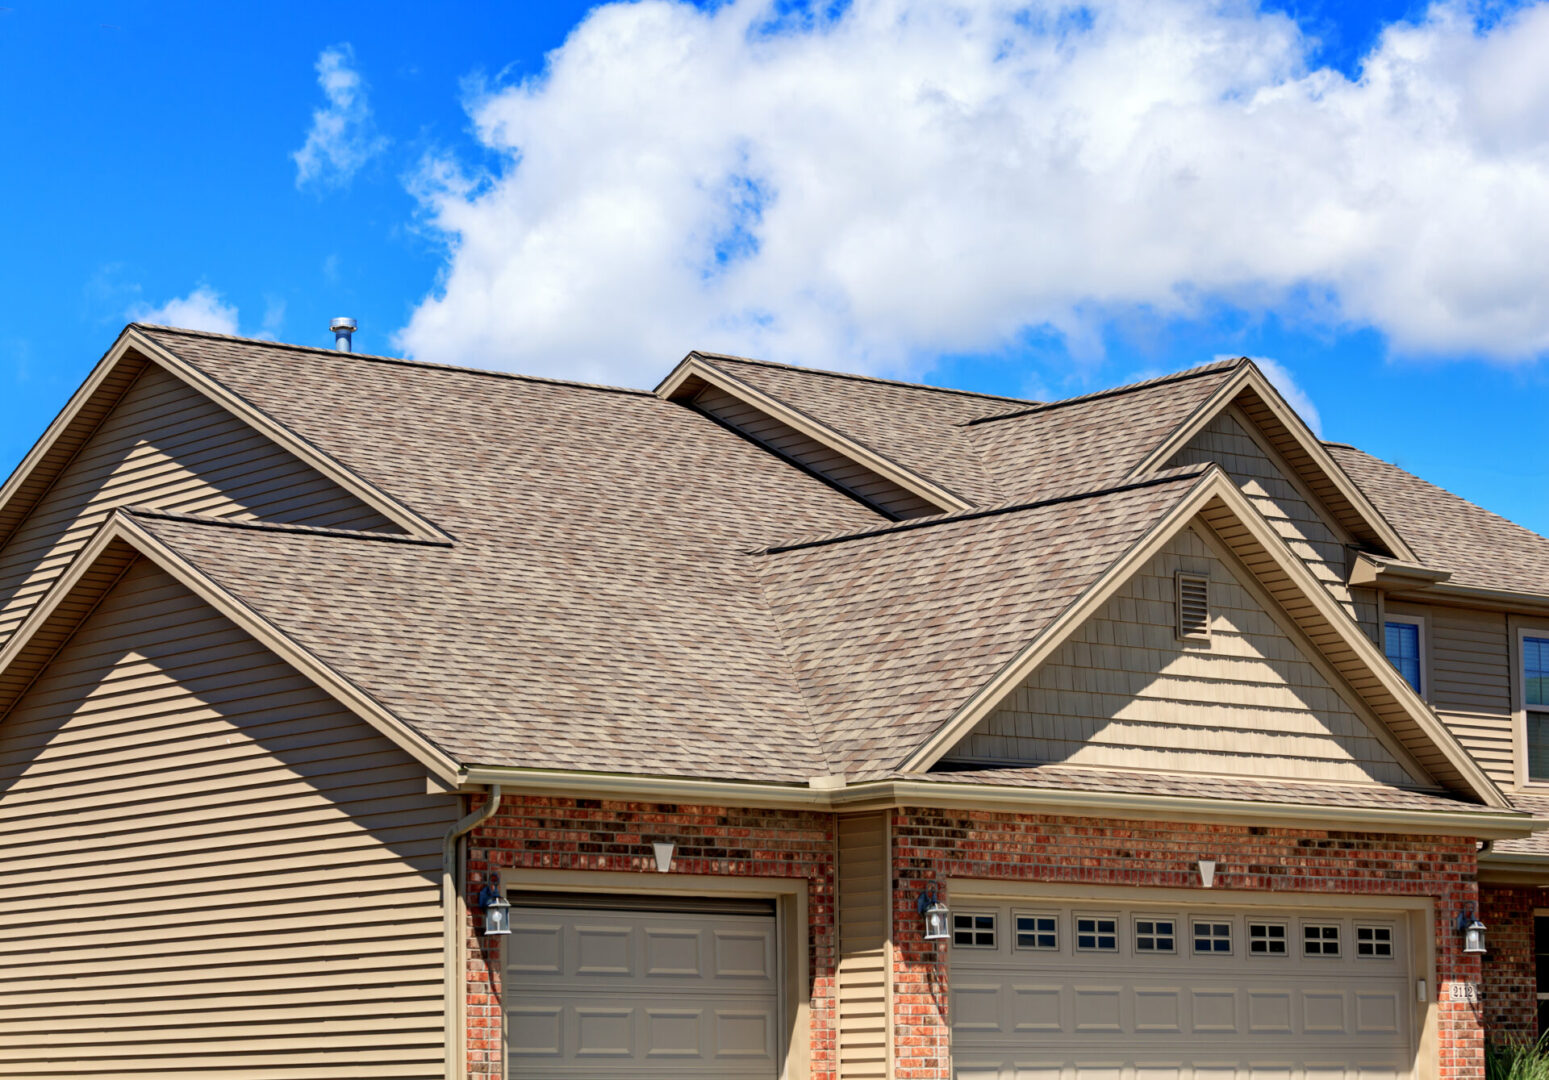 Photo of new asphalt shingles on a two story home. Blue sky and clouds are in the background.